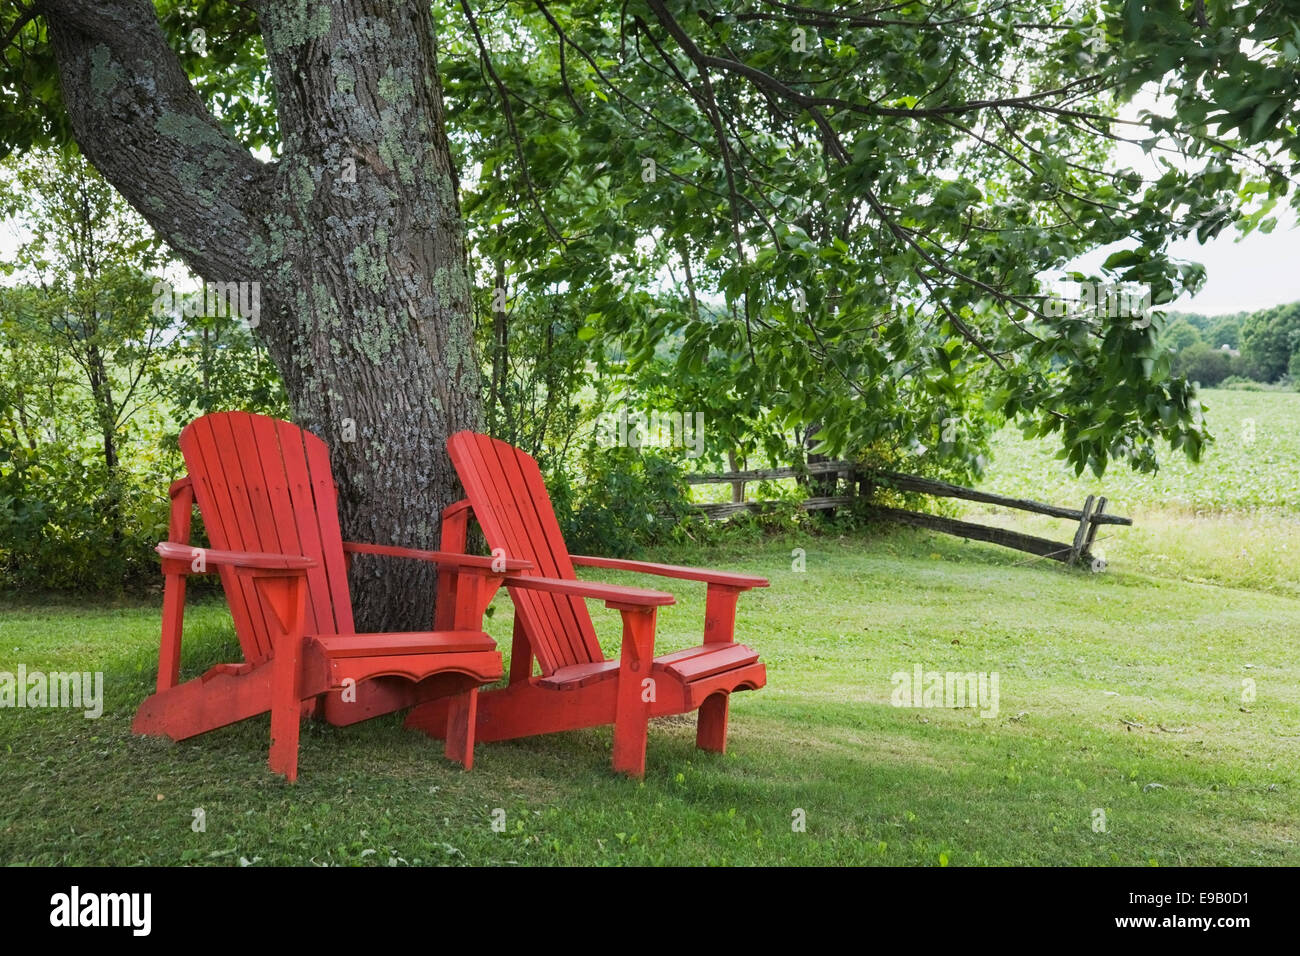 Red Adirondack Chairs Two Red Wooden Adirondack Chairs Under A Tree In A